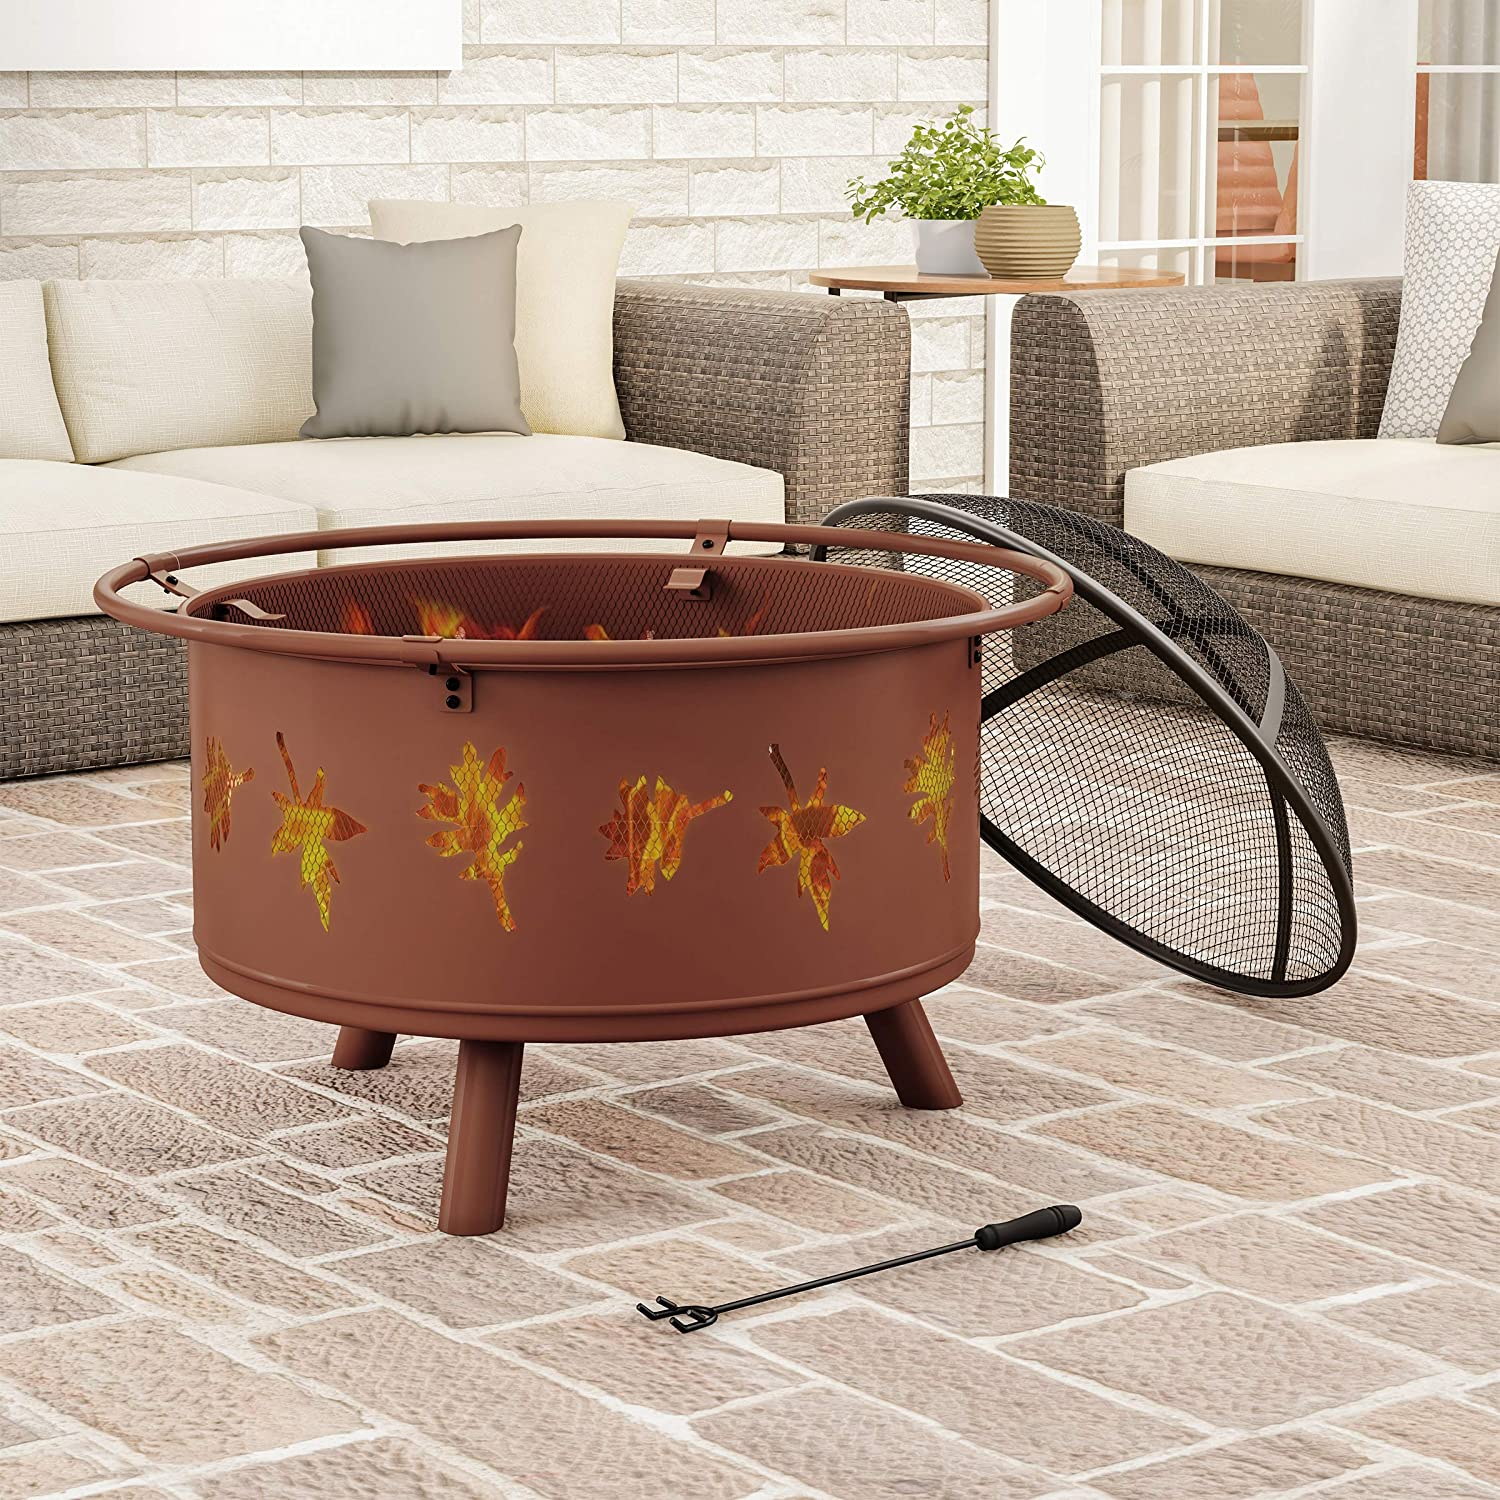 "Pure Garden 50-LG1201 Round Large Steel Bowl with Leaf Cutouts, Mesh Spark Screen, Log Poker & Storage Cover 32"" Outdoor Deep Fire Pit, Brown"